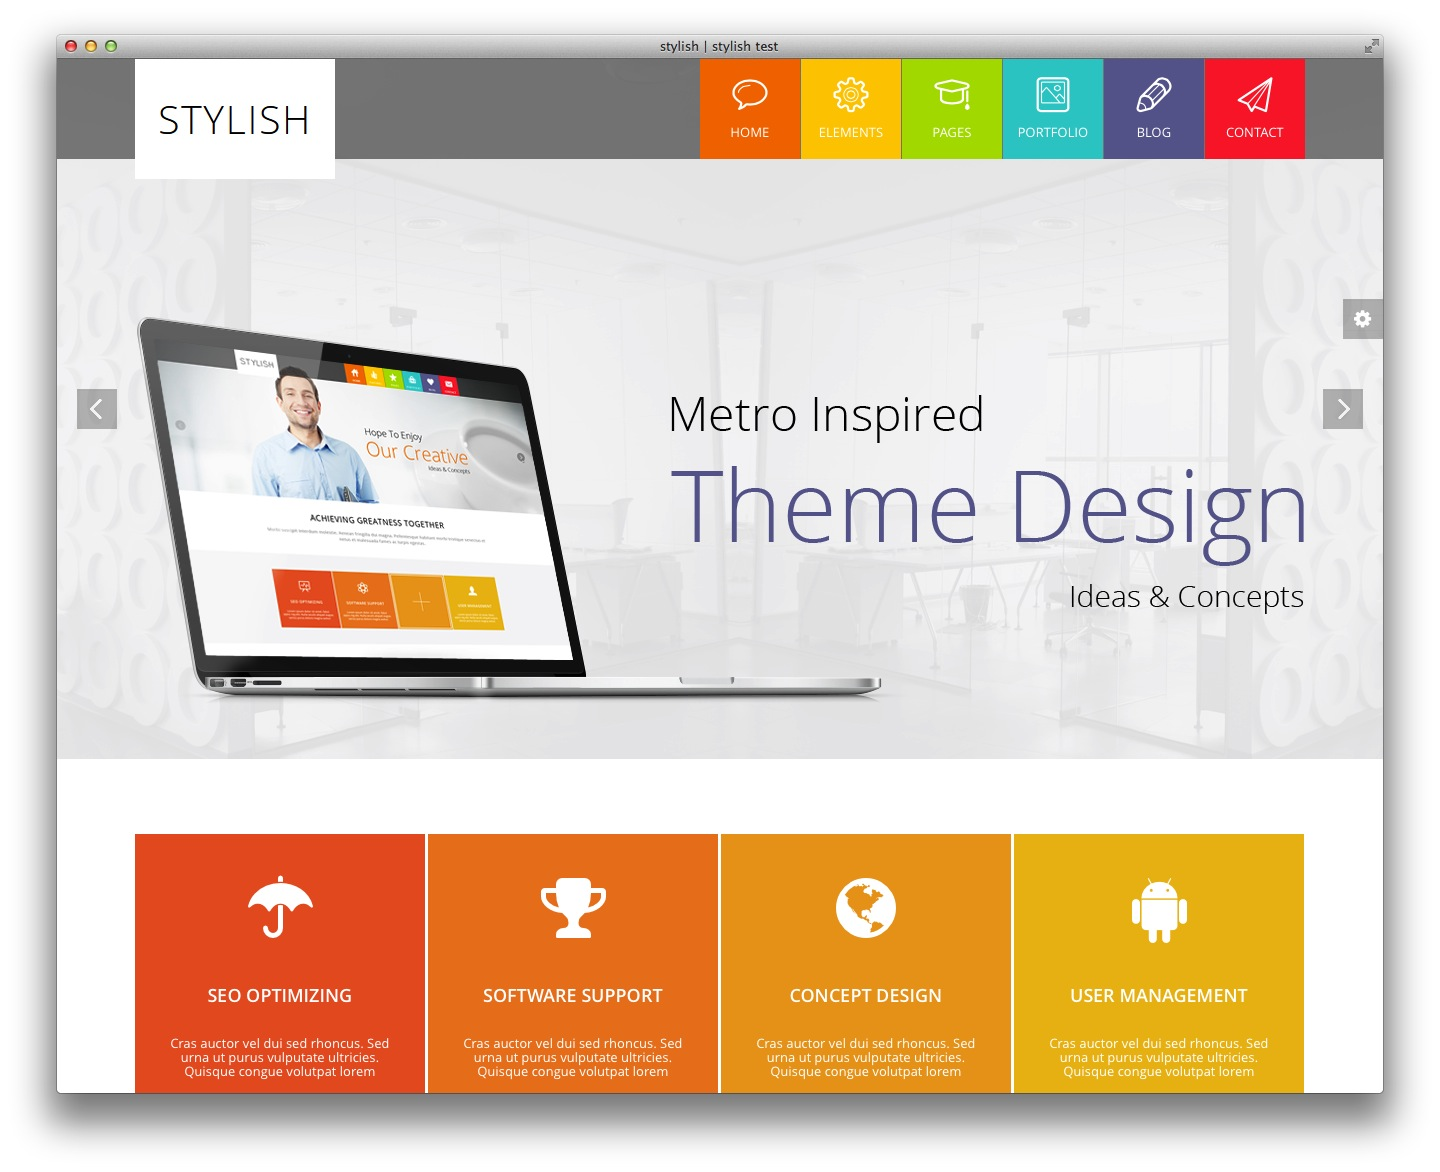 Responsive-themes-look-amazing